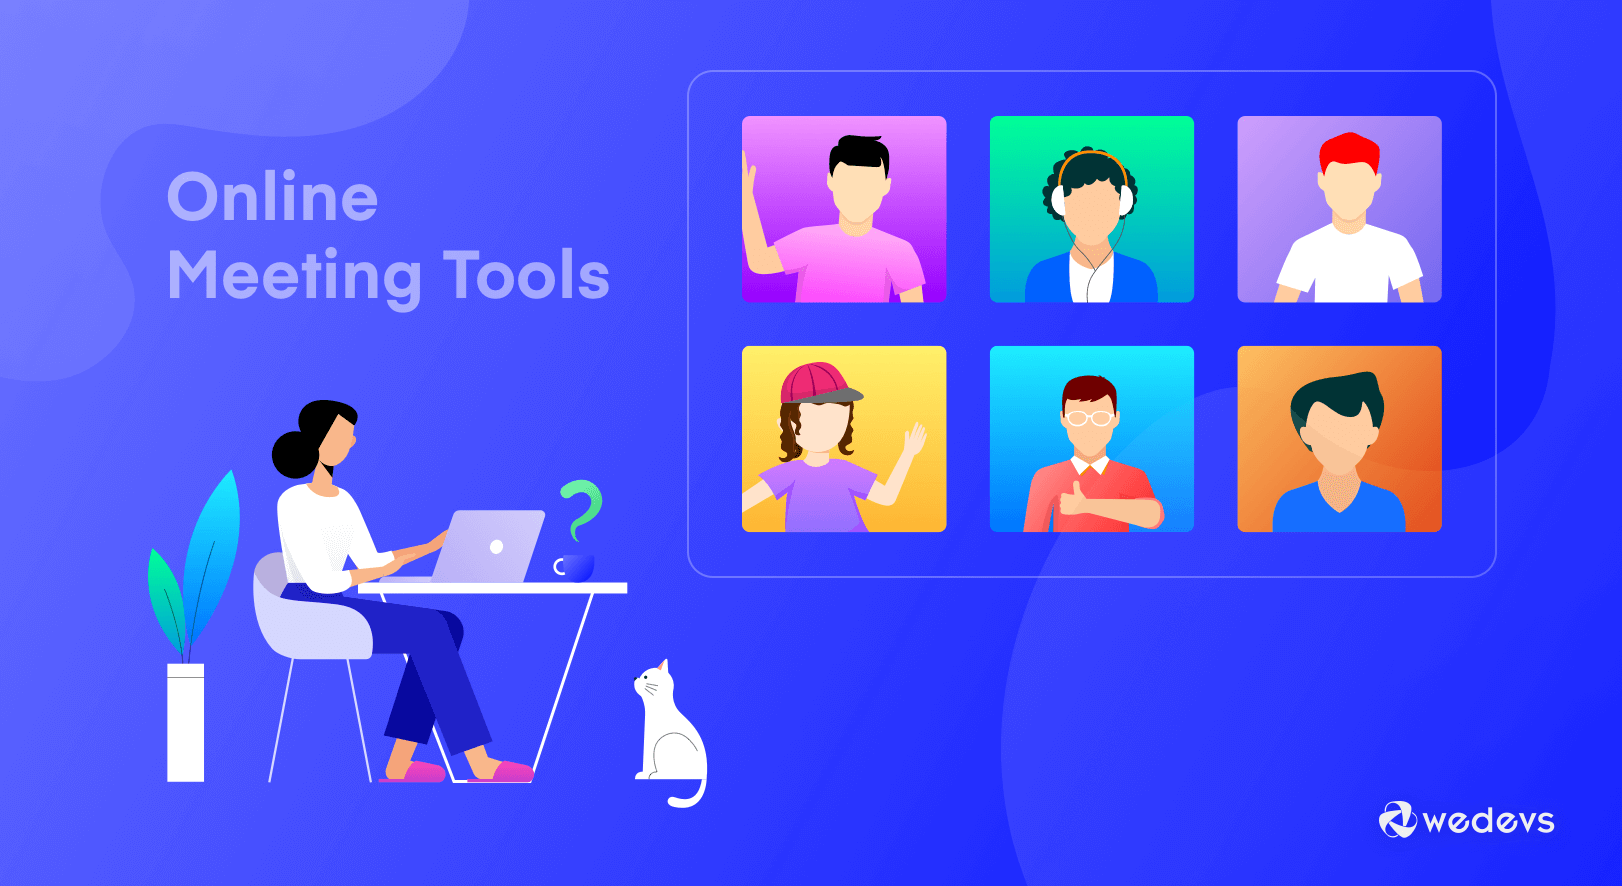 7 Free Online Meeting Tools: Which One to Choose for Your Team & Why